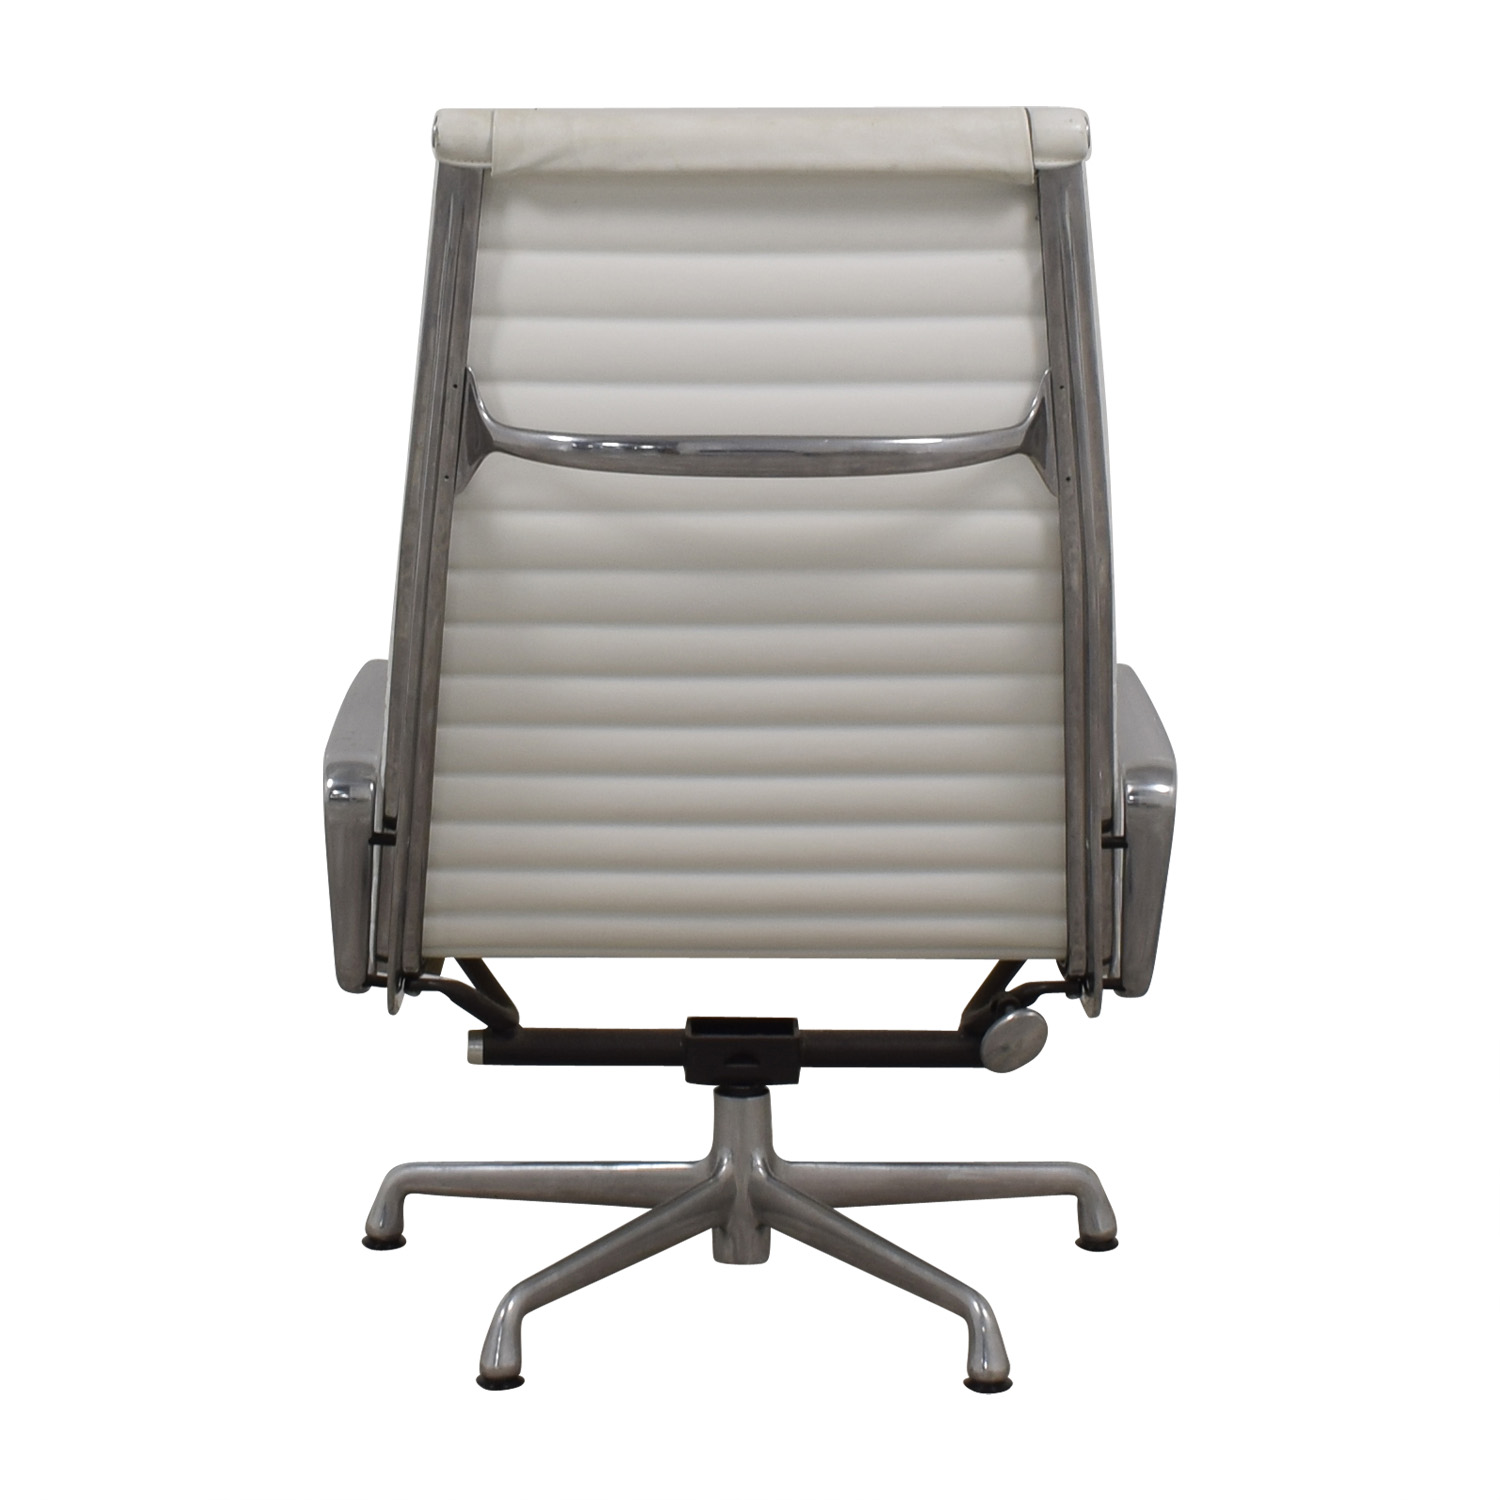 office chair for sale balance ball 83 off ikea black adjustable reclining chairs herman miller eames aluminum group white lounge